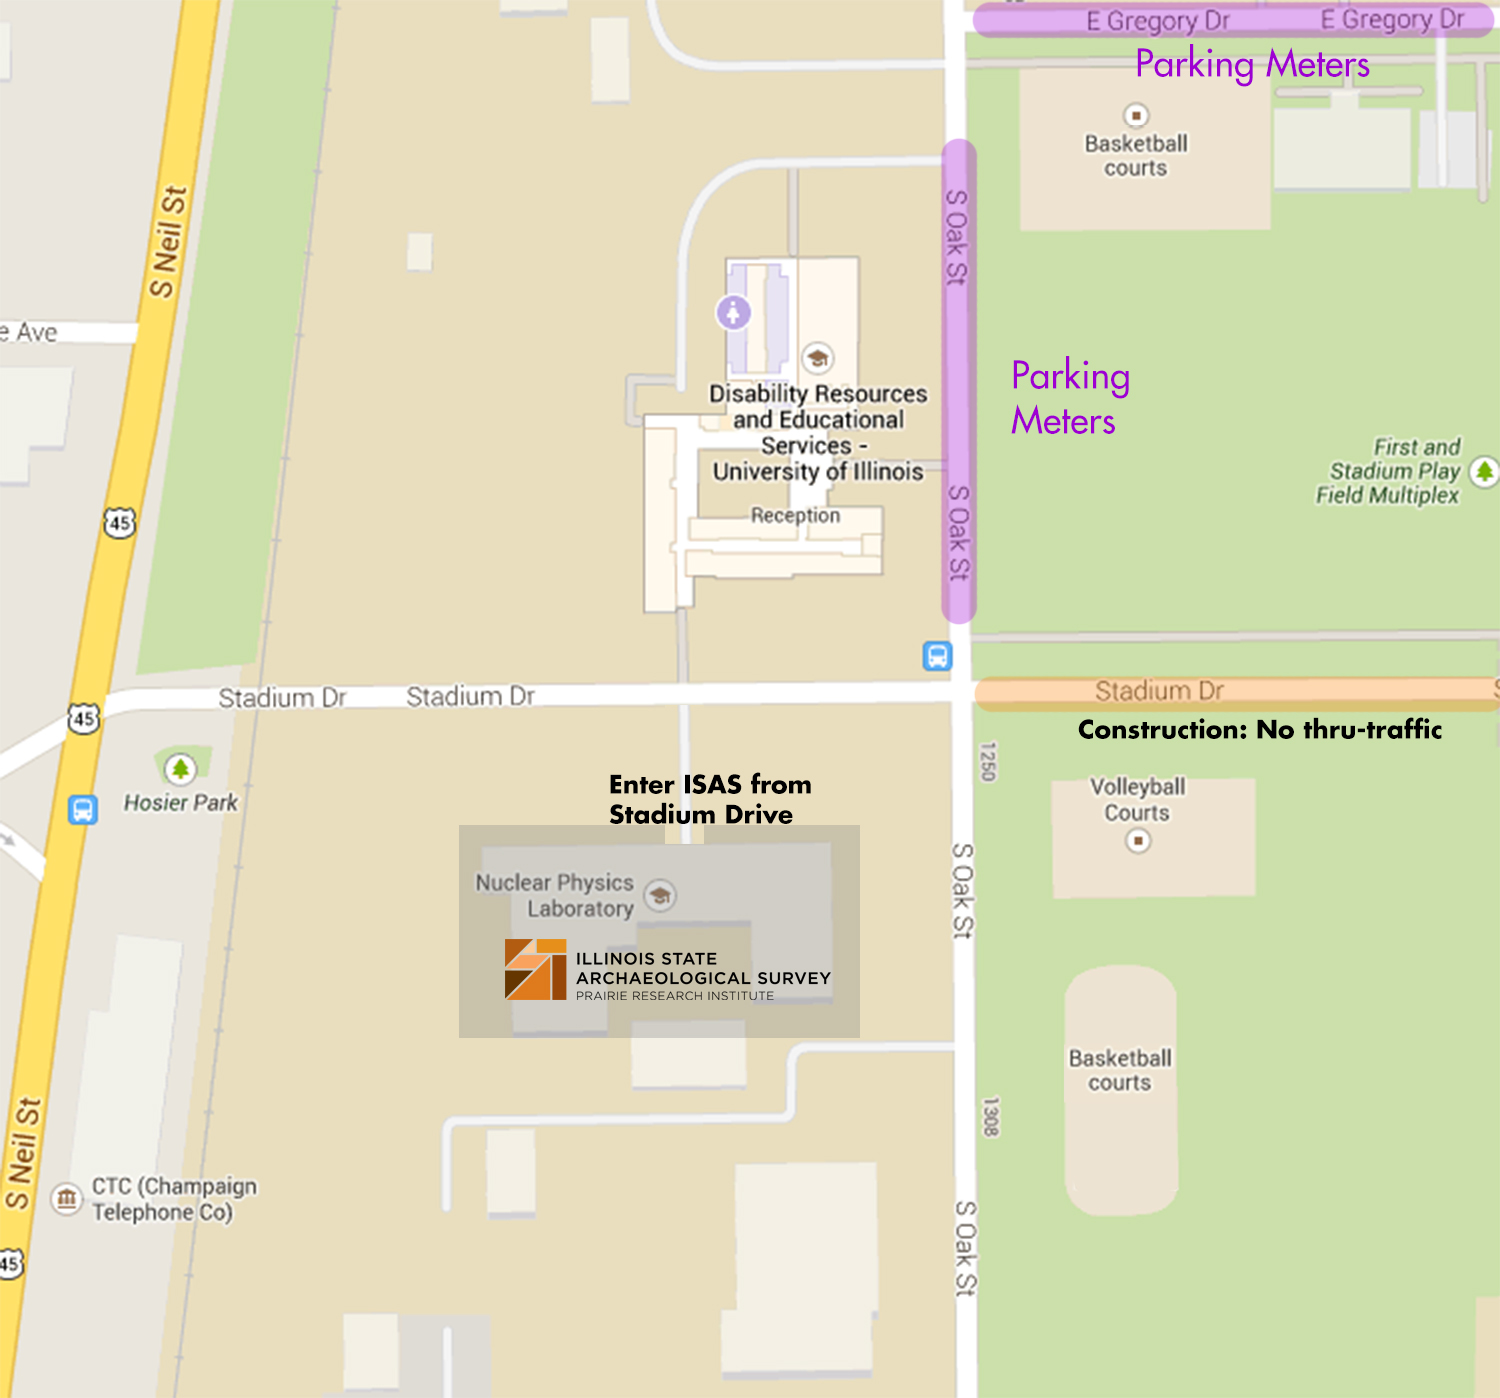 ISAS street parking map